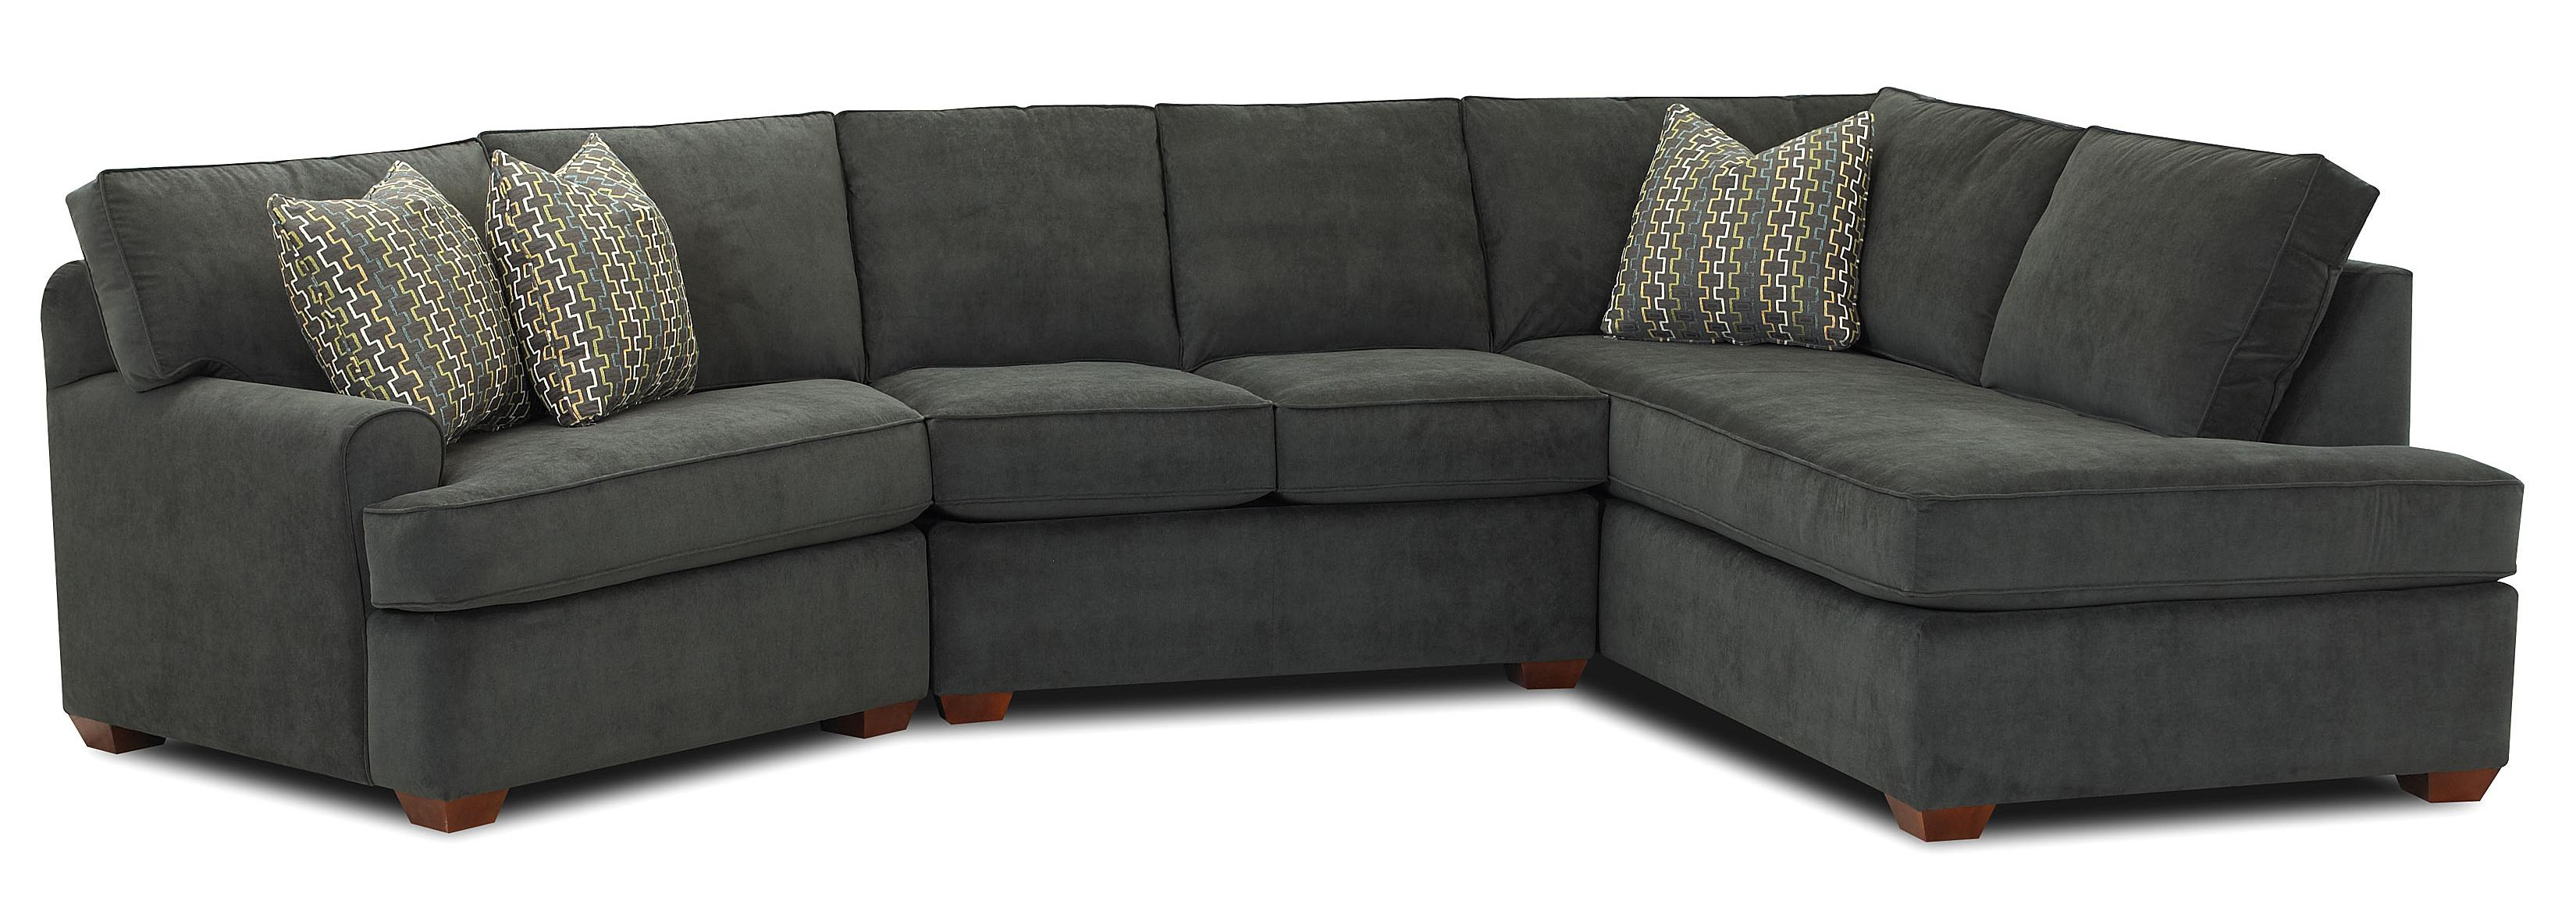 Sectional sofa with right facing sofa chaise by klaussner for Sofa with only one arm